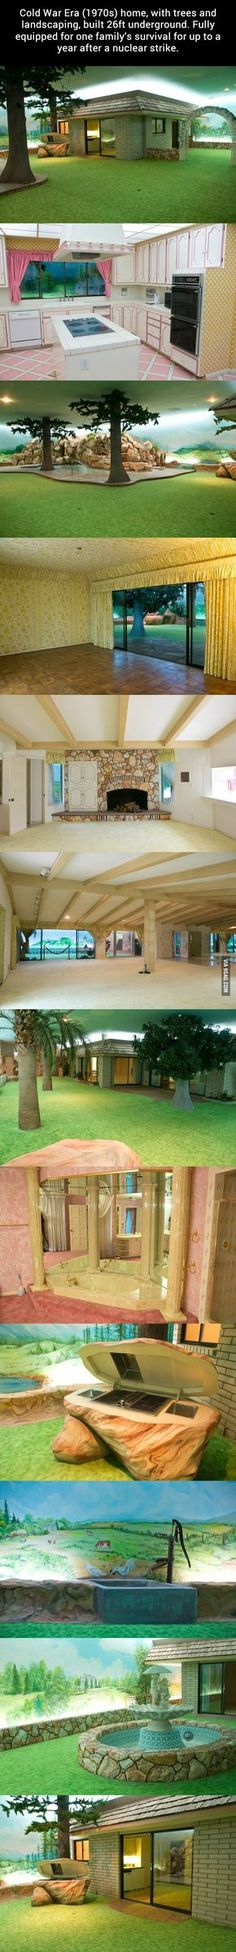 Cold War Era home, with trees and landscaping, built 26ft underground.